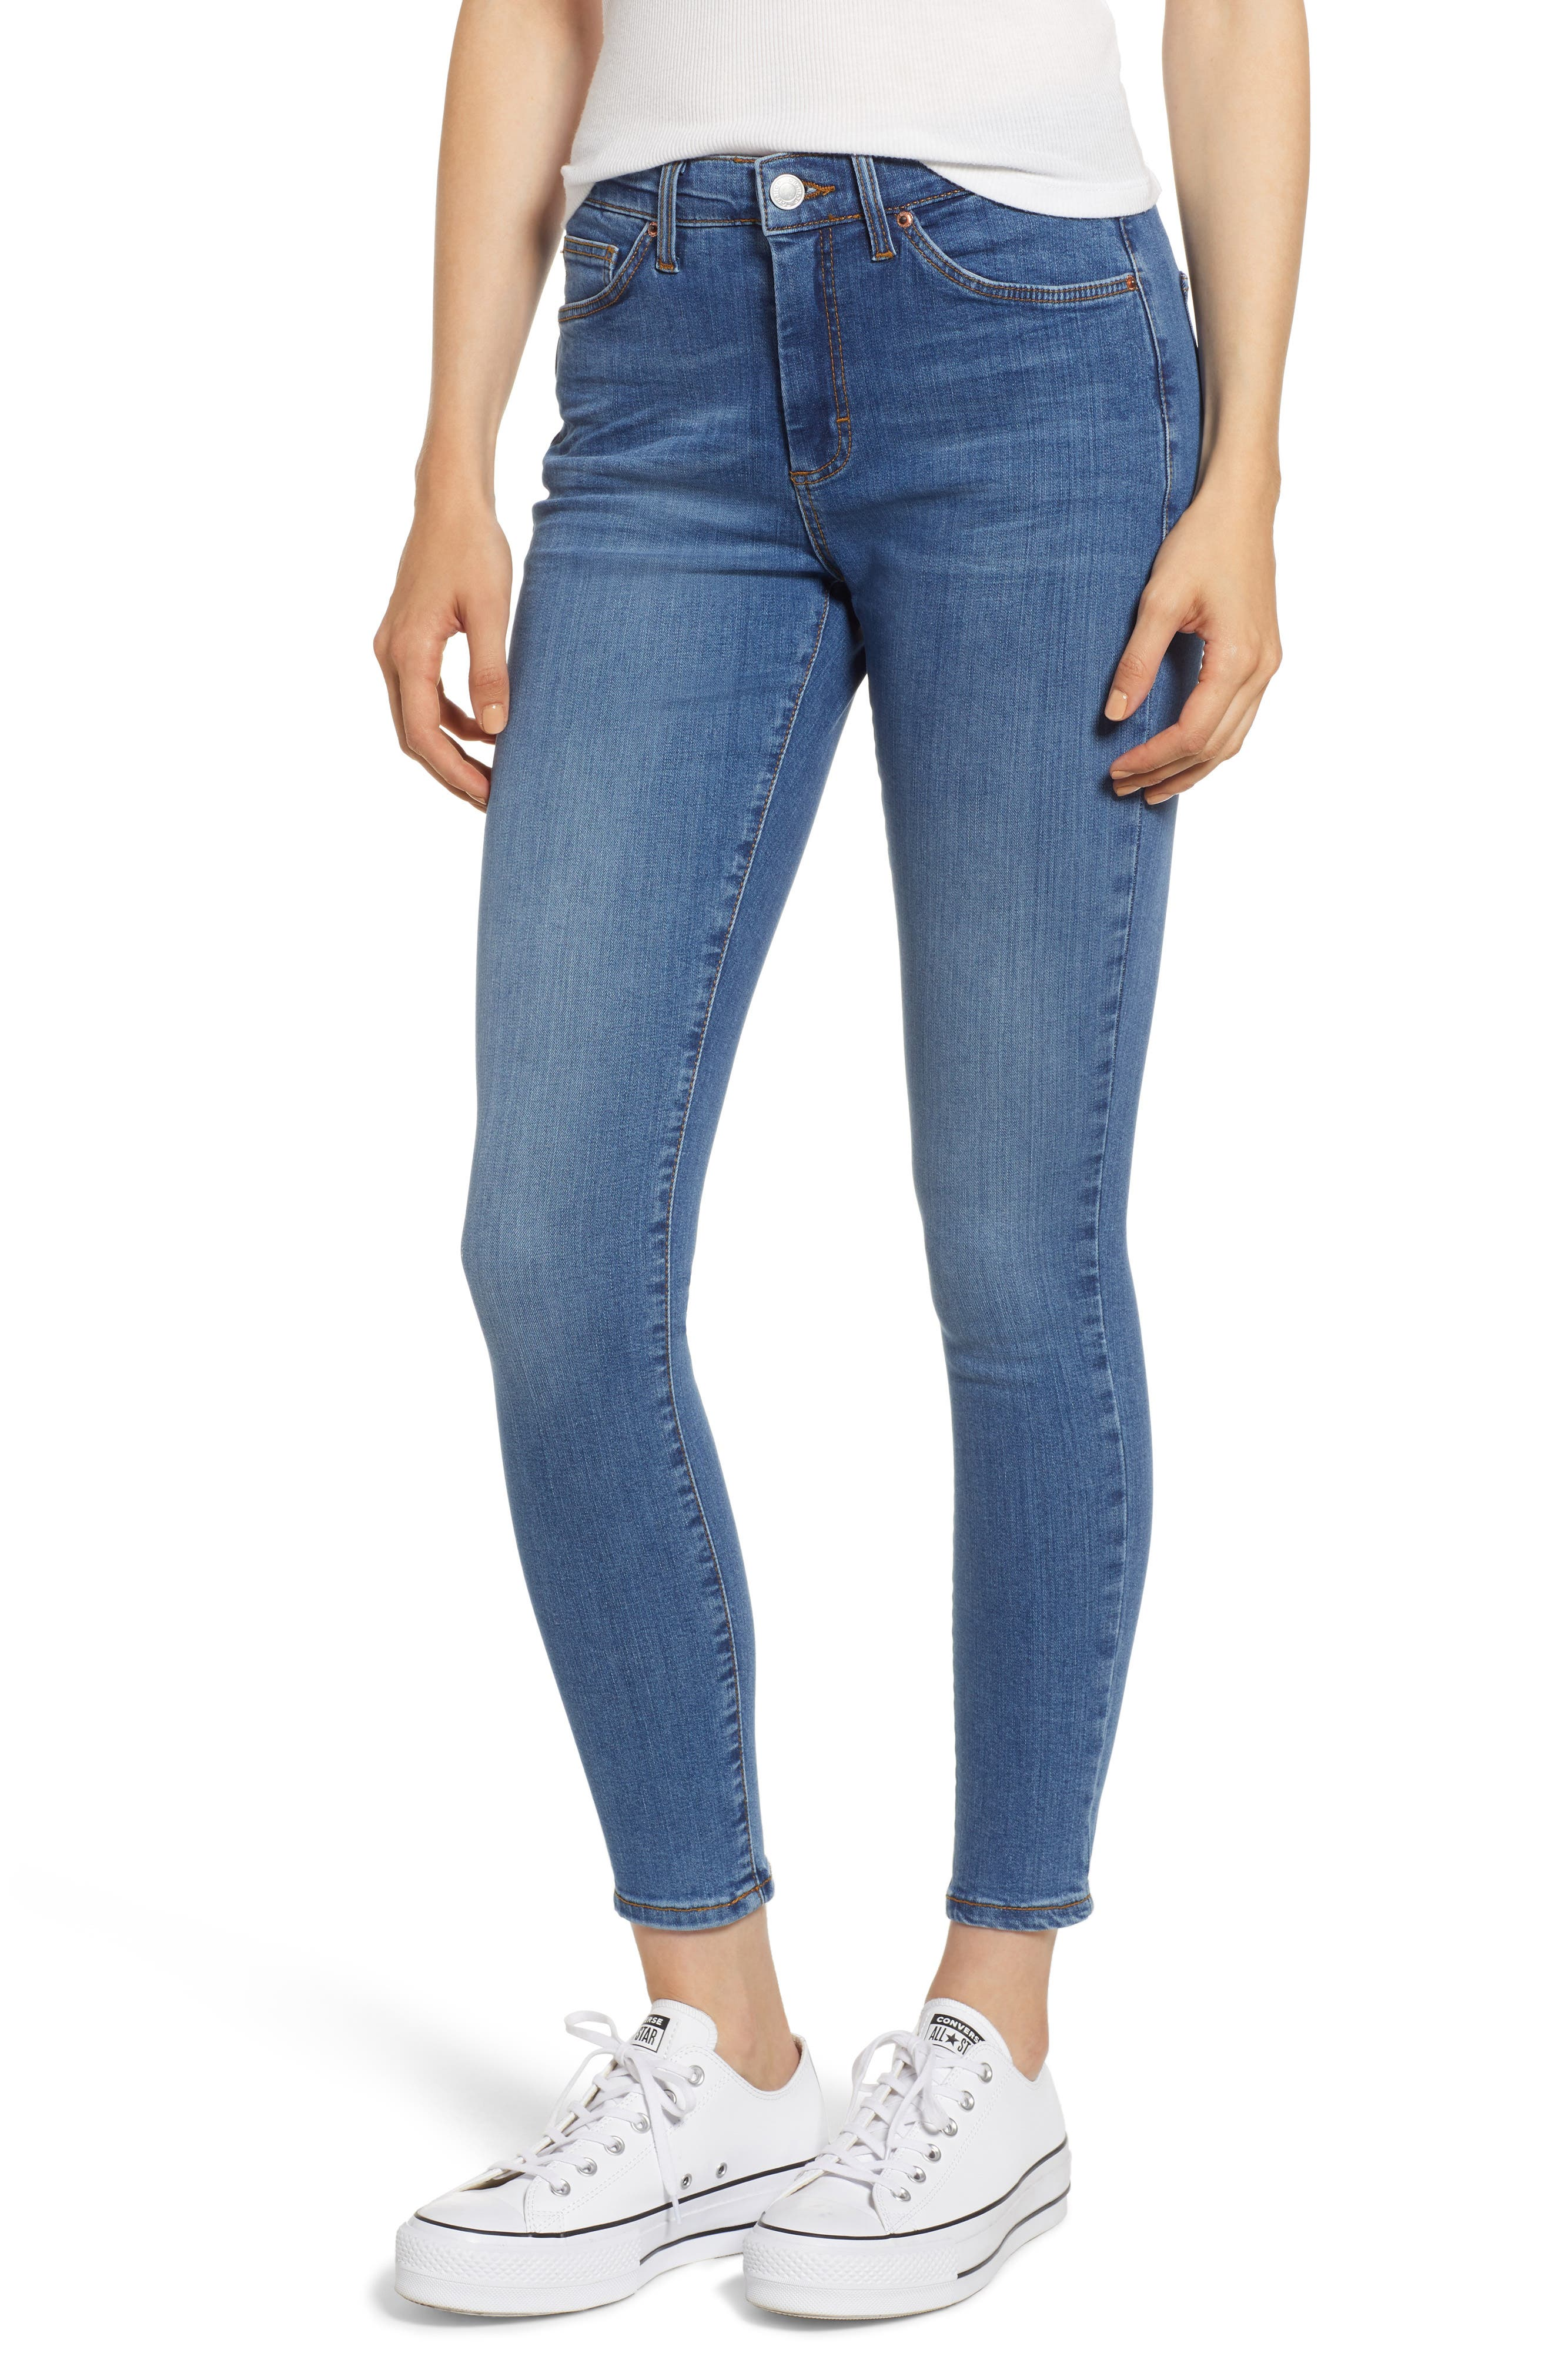 MOTO Sidney Stretch Skinny Jeans,                         Main,                         color, Mid Stone